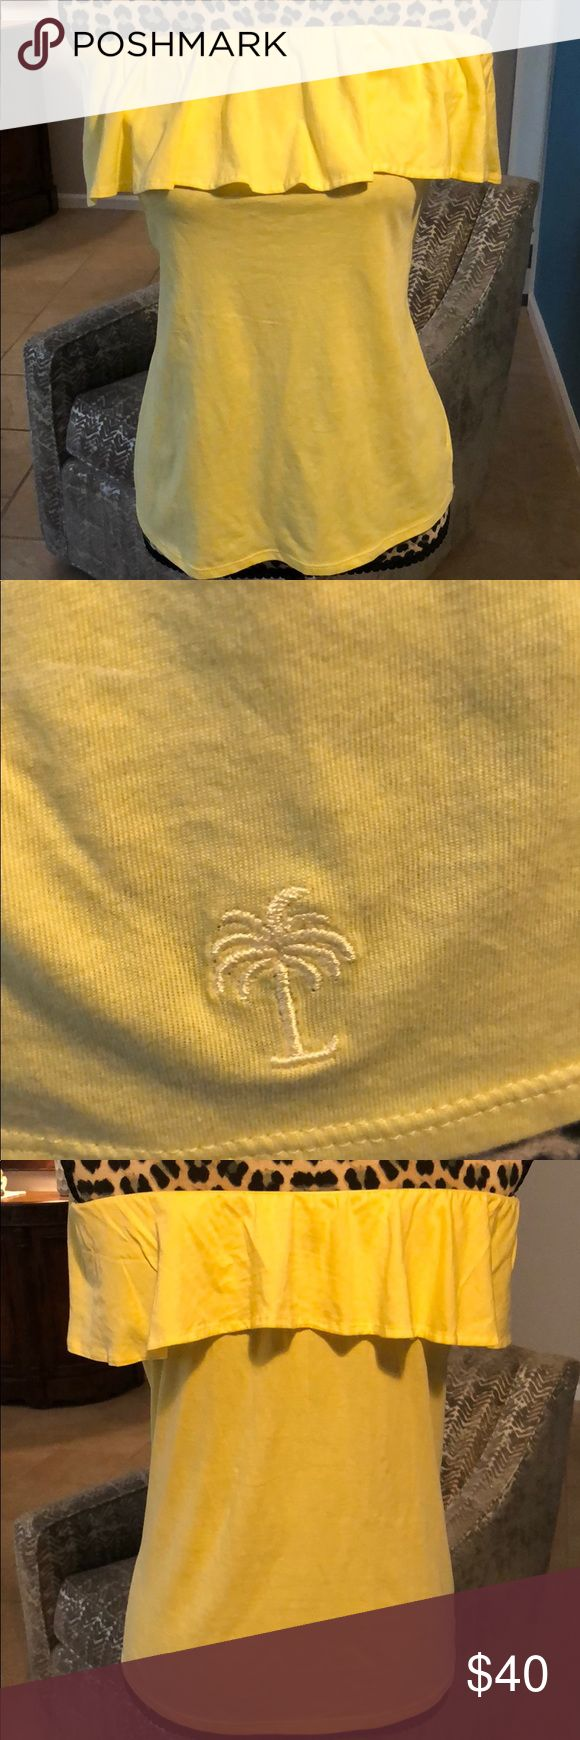 🍍 Lilly Pulitzer Wiley Ruffle Tube Top Yellow 🍍 Wiley Ruffle Tube Top - Yellow  We all need a cotton tube top in our closet because, well - tan lines are the worst.  Wiley is the perfect summer tube top.  Beautifully bright colors and soft materials - is there anything better?  Solid Tube Top with Flounce Detail with Tonal Logo.  Embroidery at Helm. Pima Cotton Jersey (100% Cotton). Lilly Pulitzer Tops